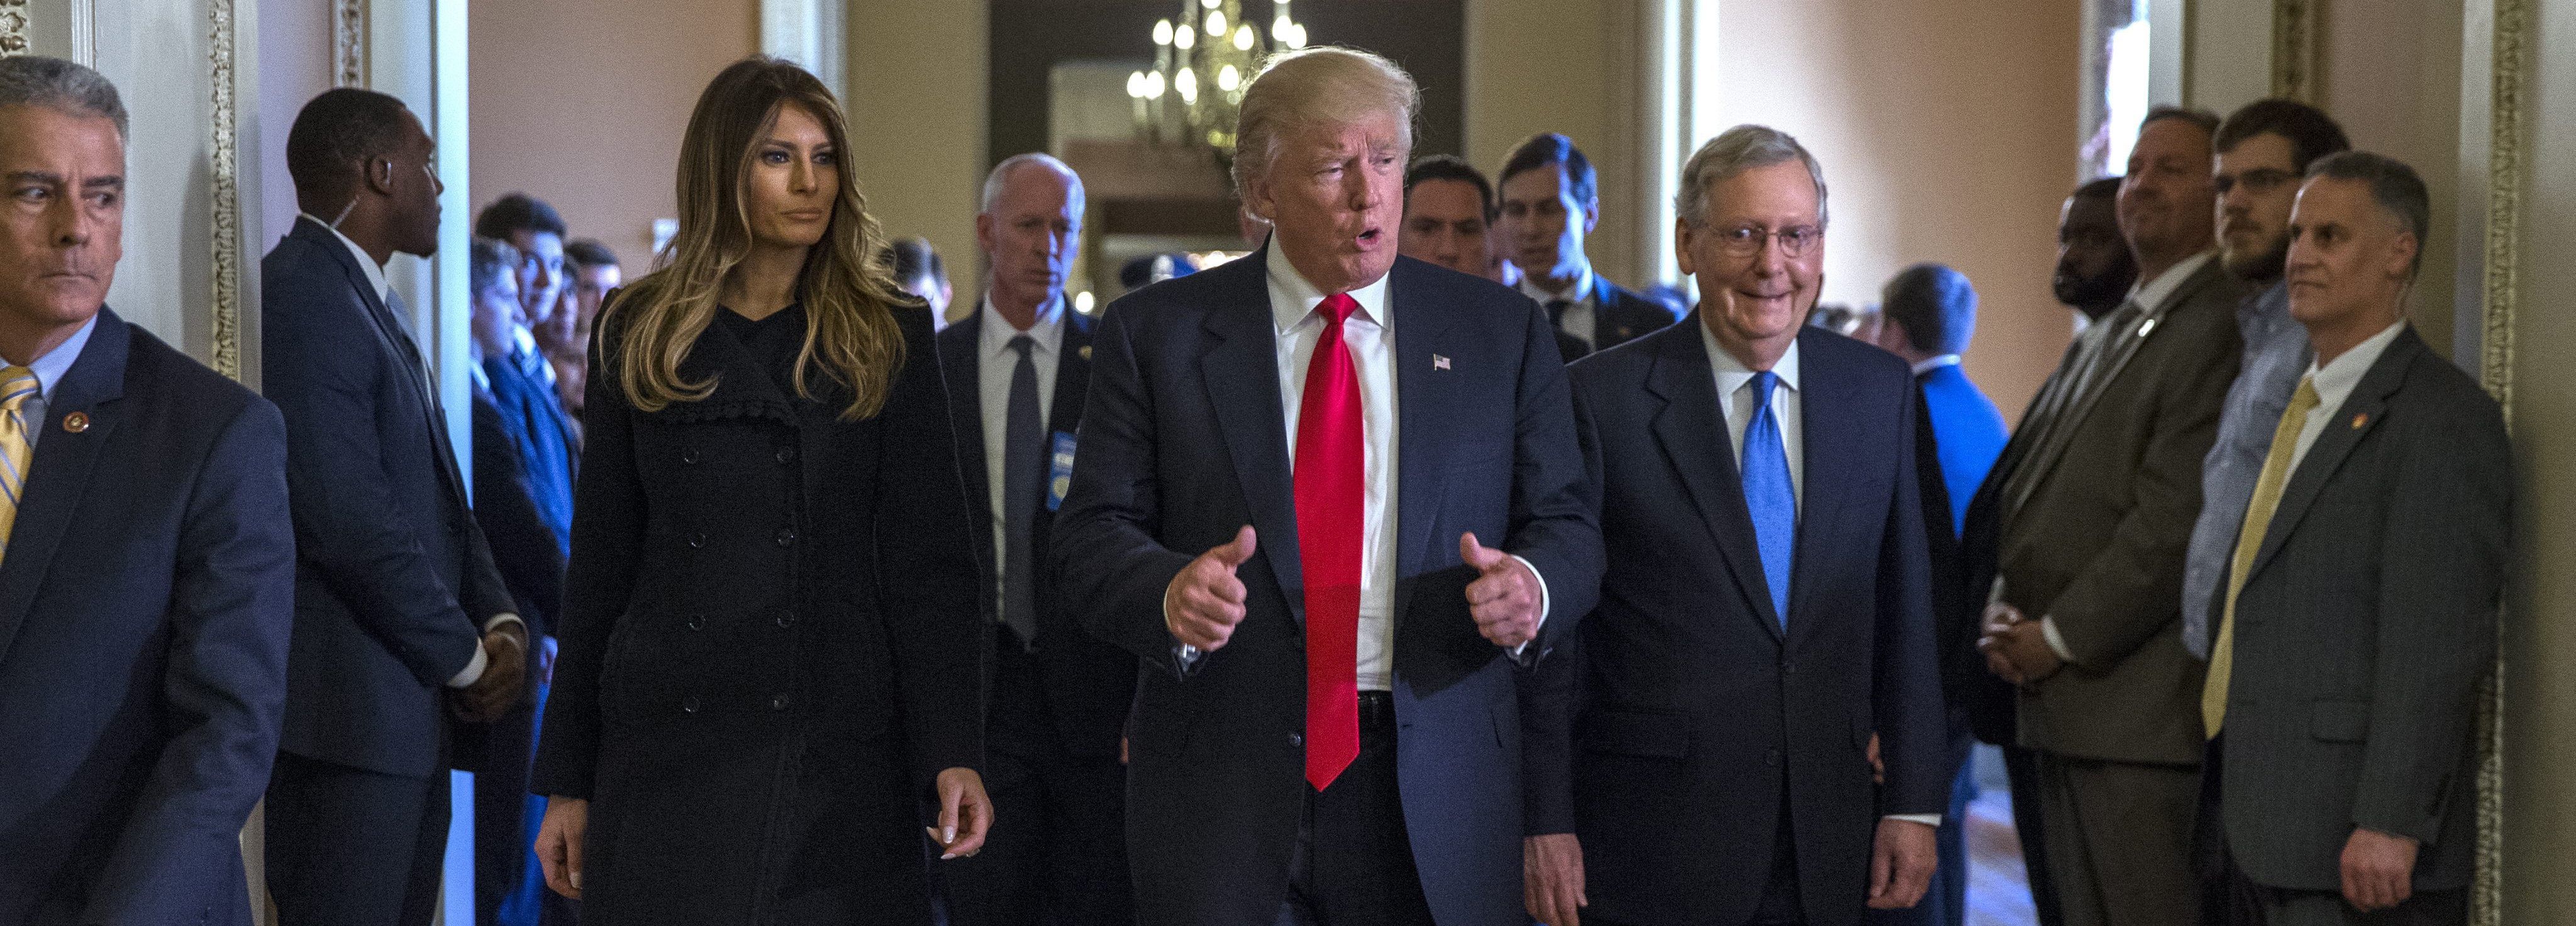 Image result for PHOTOS OF REPUBLICAN LEADERS AND TRUMP